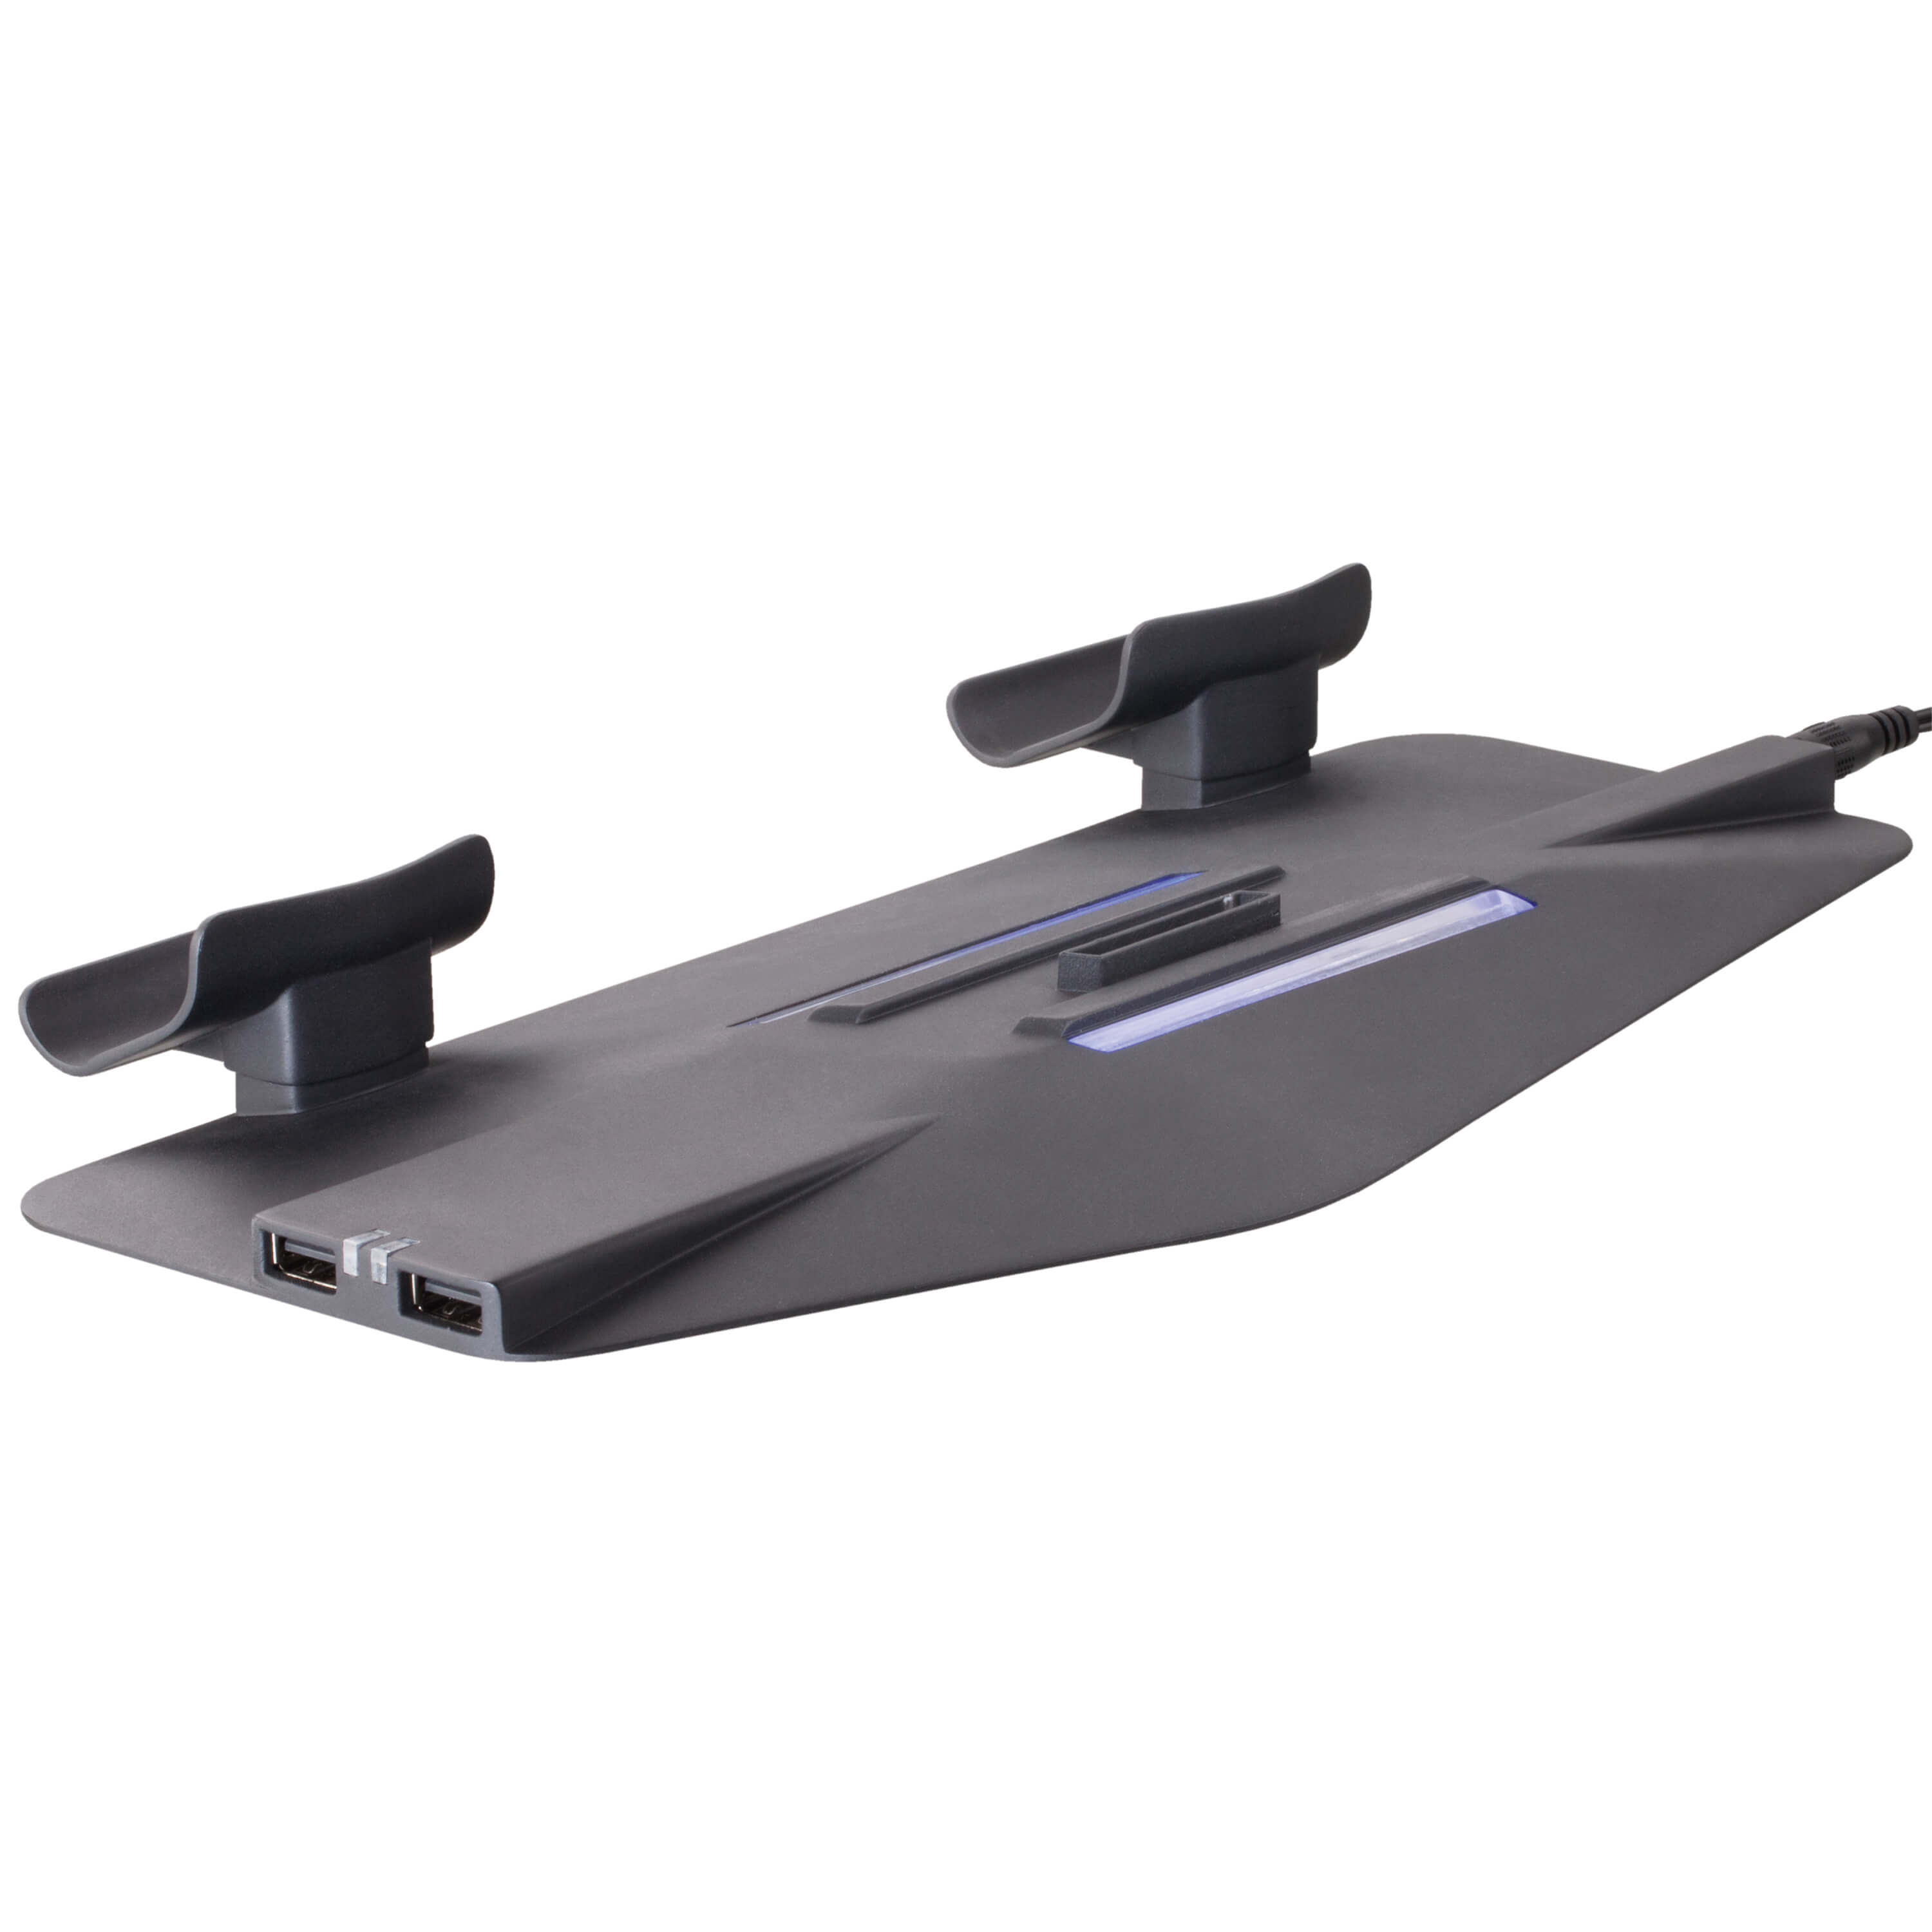 Hama Multi-Stand Charging Station - 115456